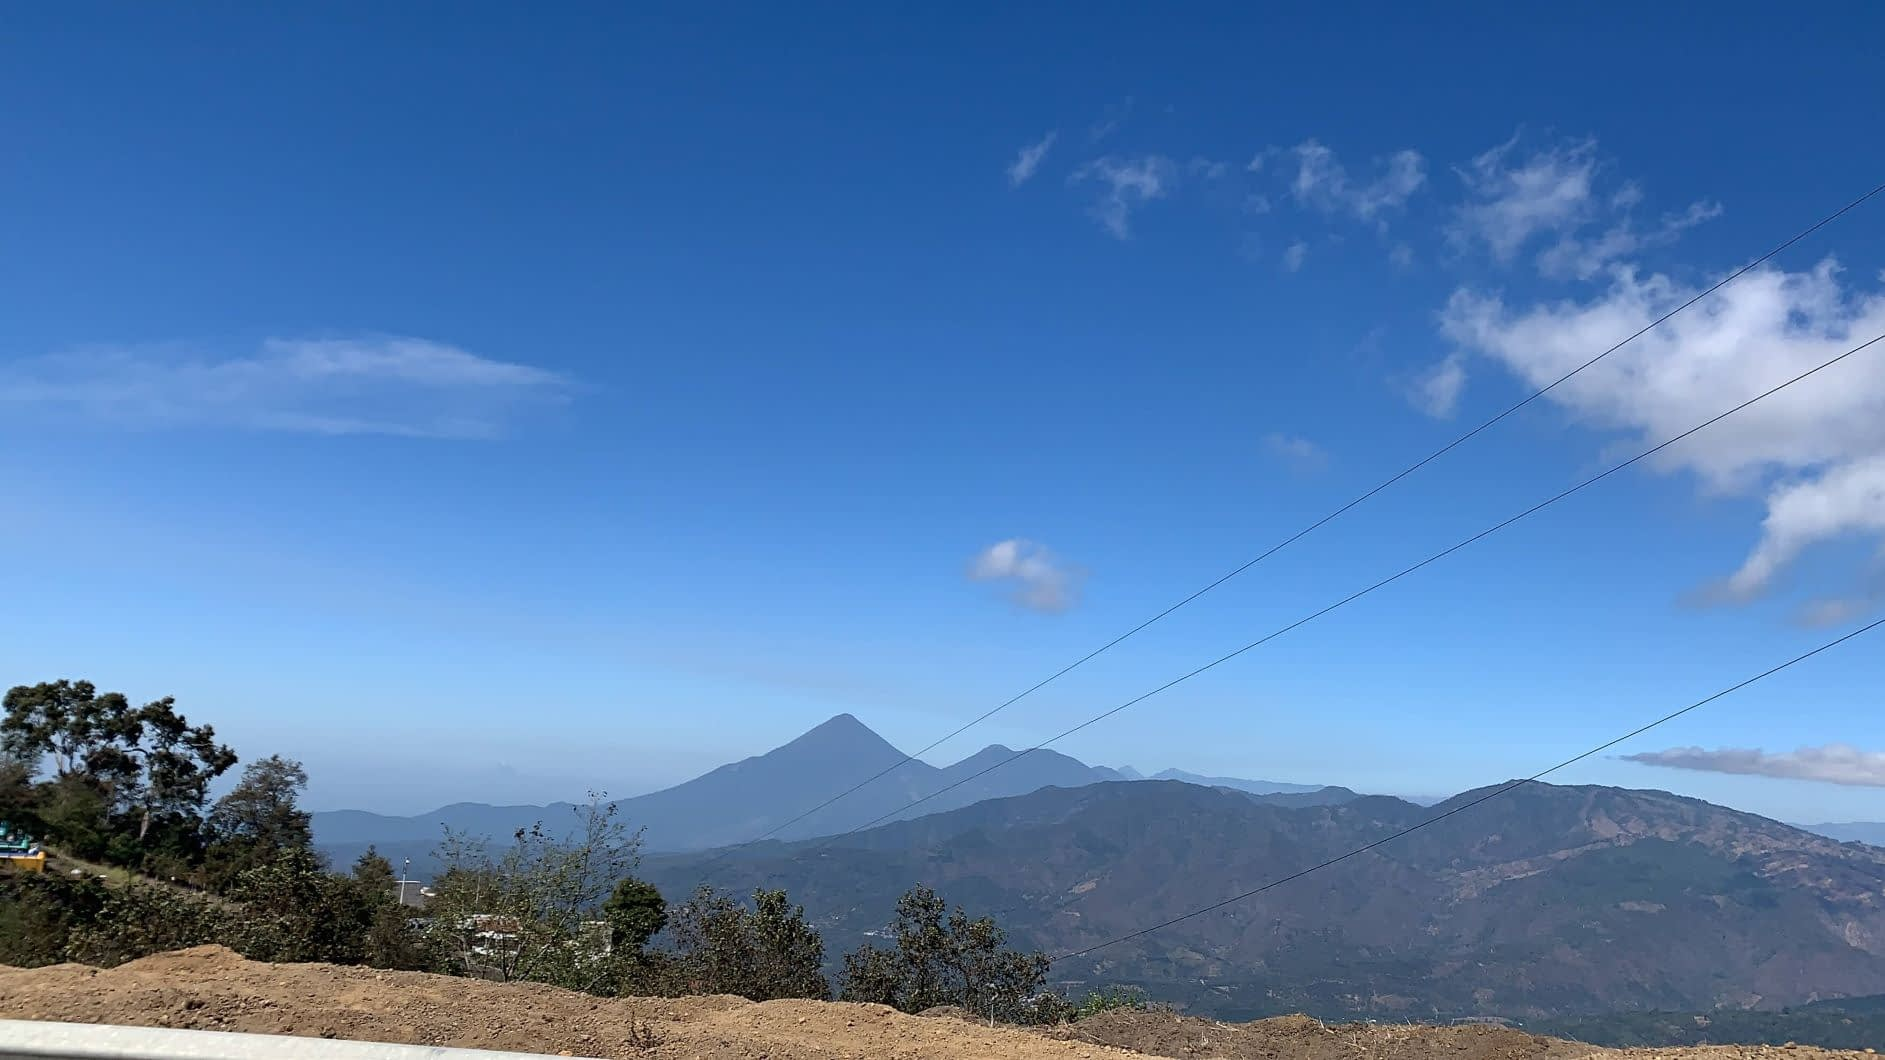 The view driving to Acatenango